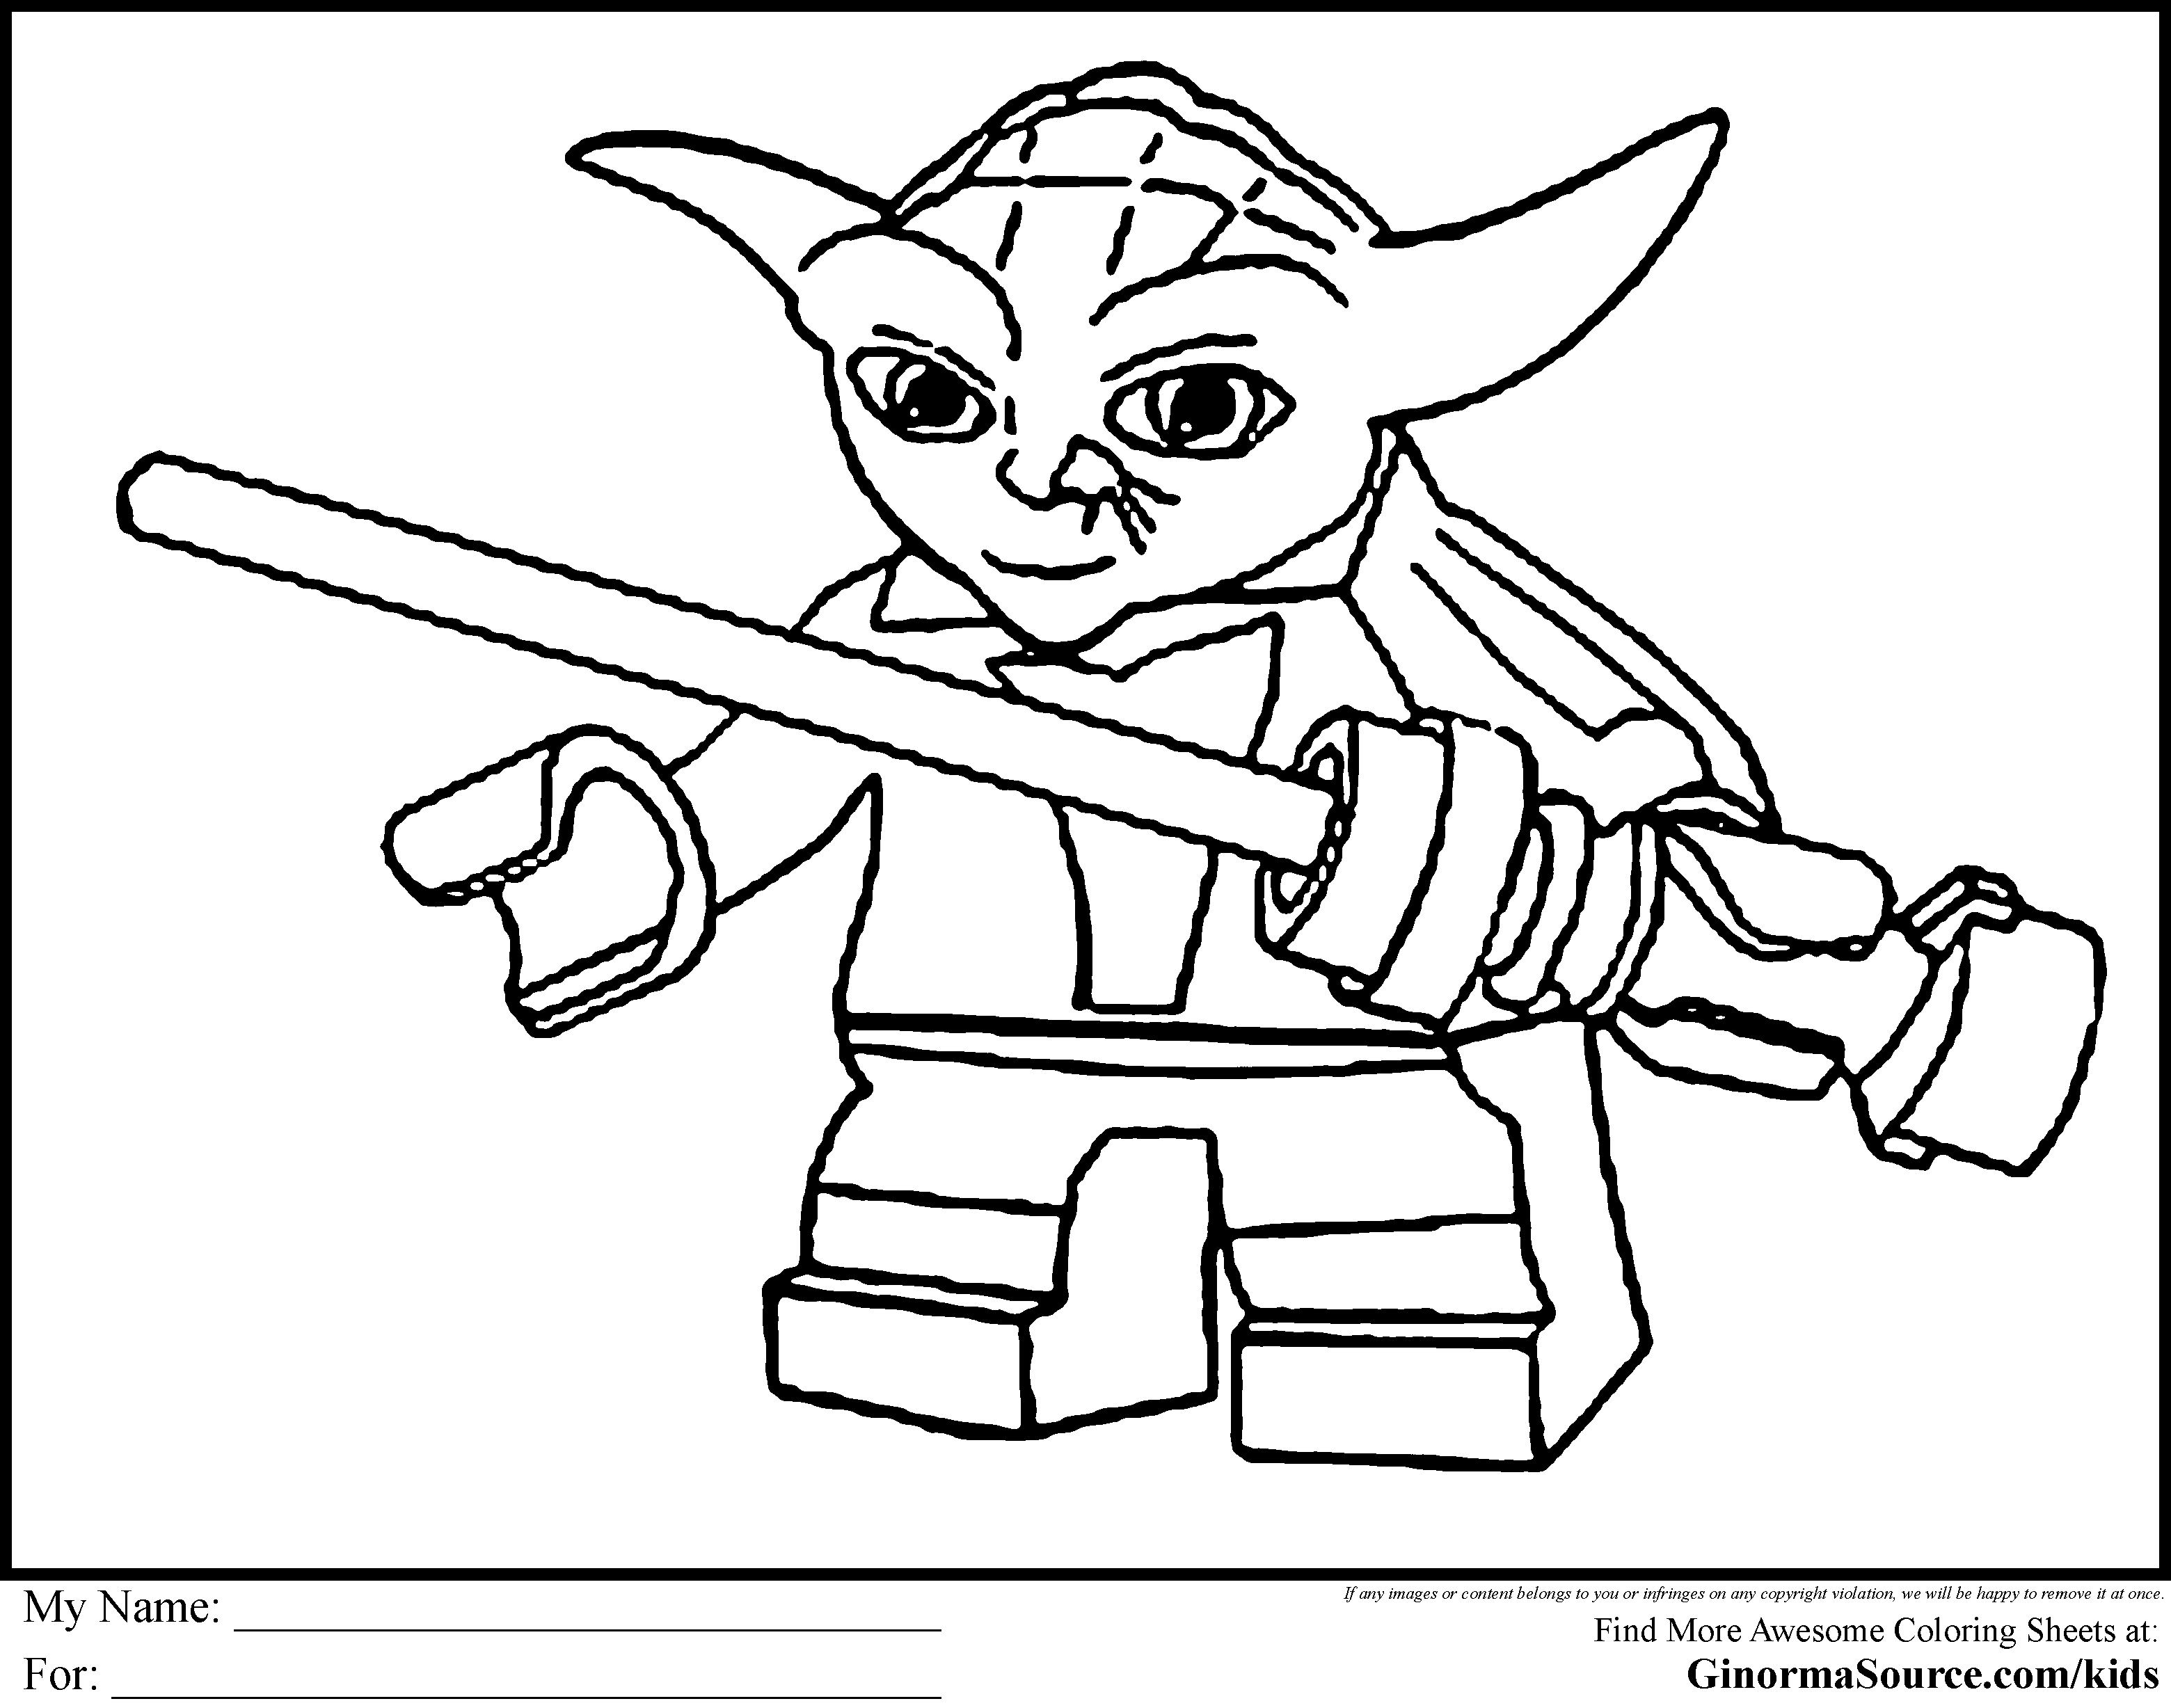 Star Wars Captain Rex Coloring Pages - Coloring Home